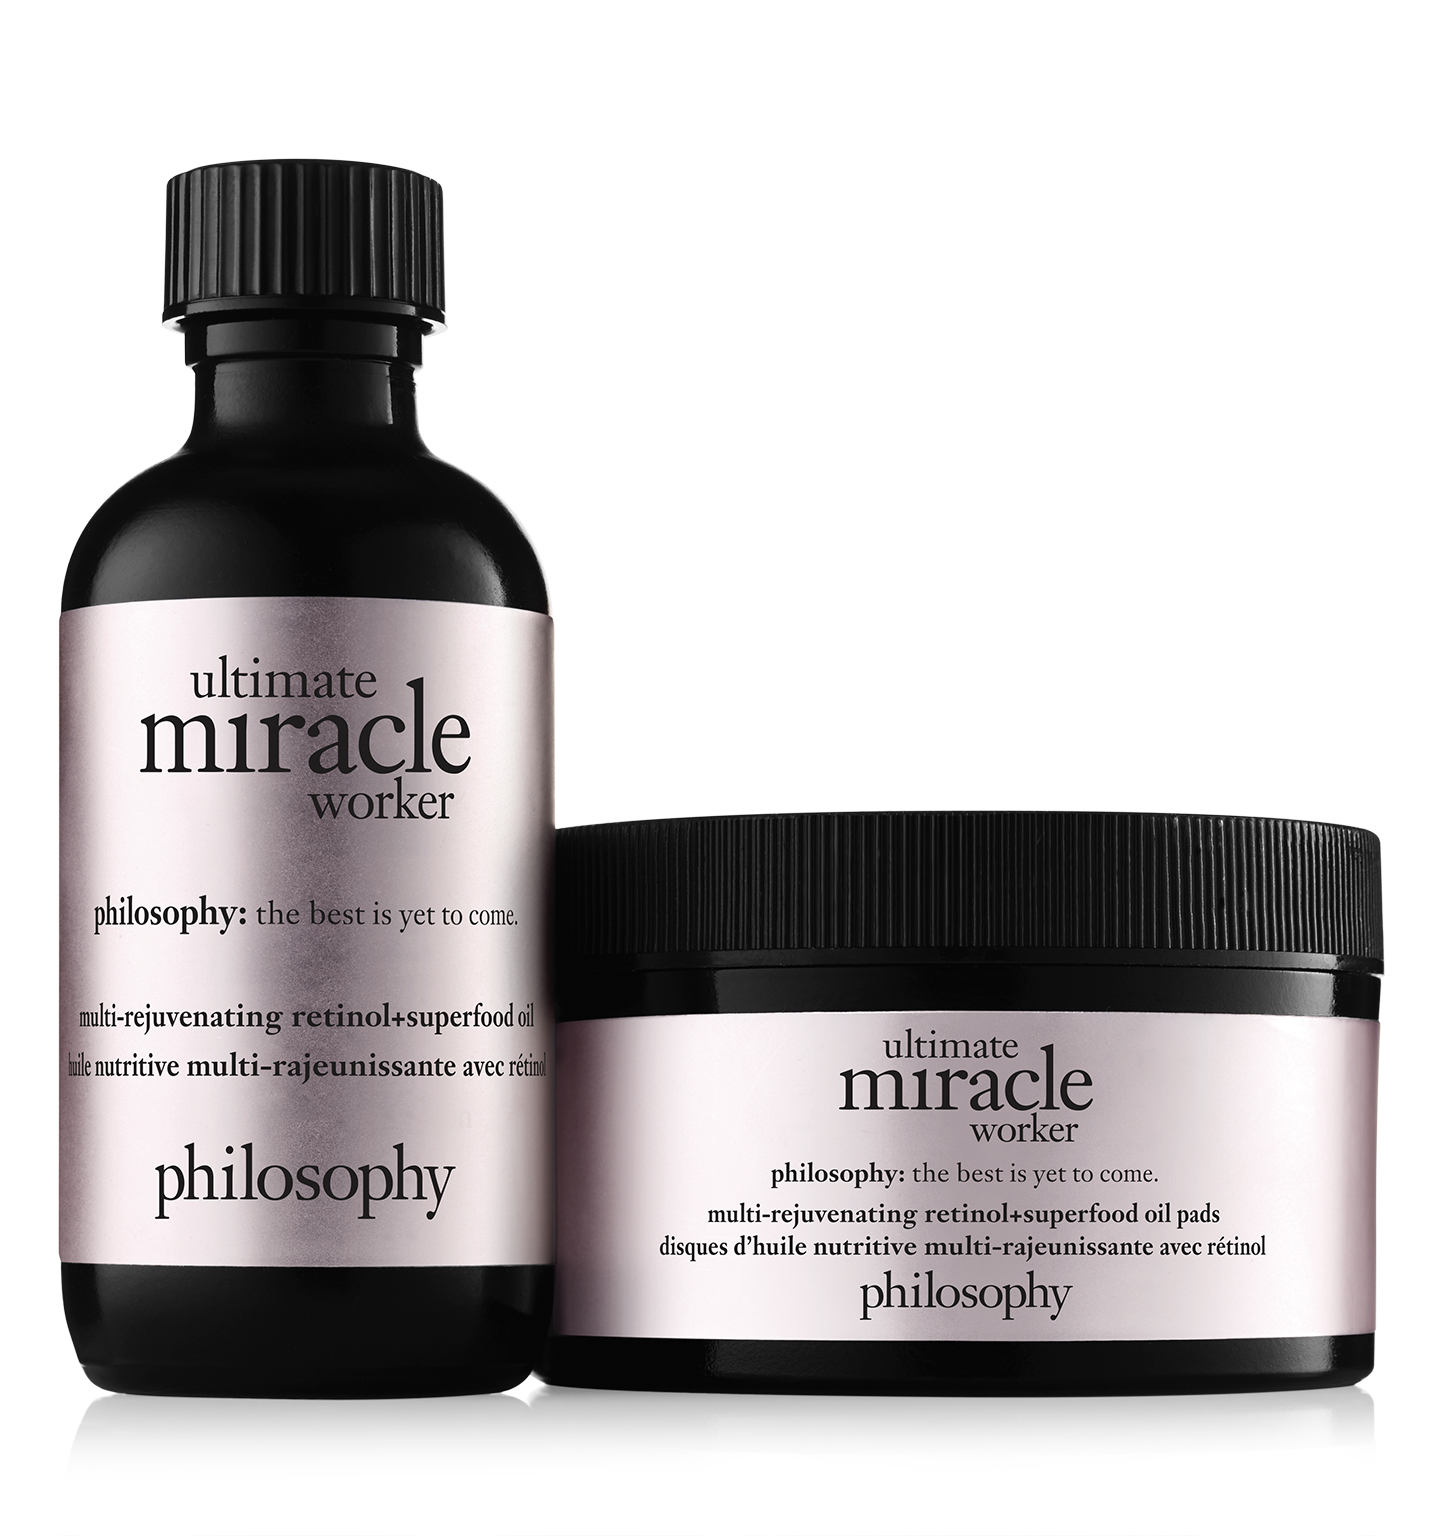 philosophy, ultimate miracle worker retinol + superfood oil pads